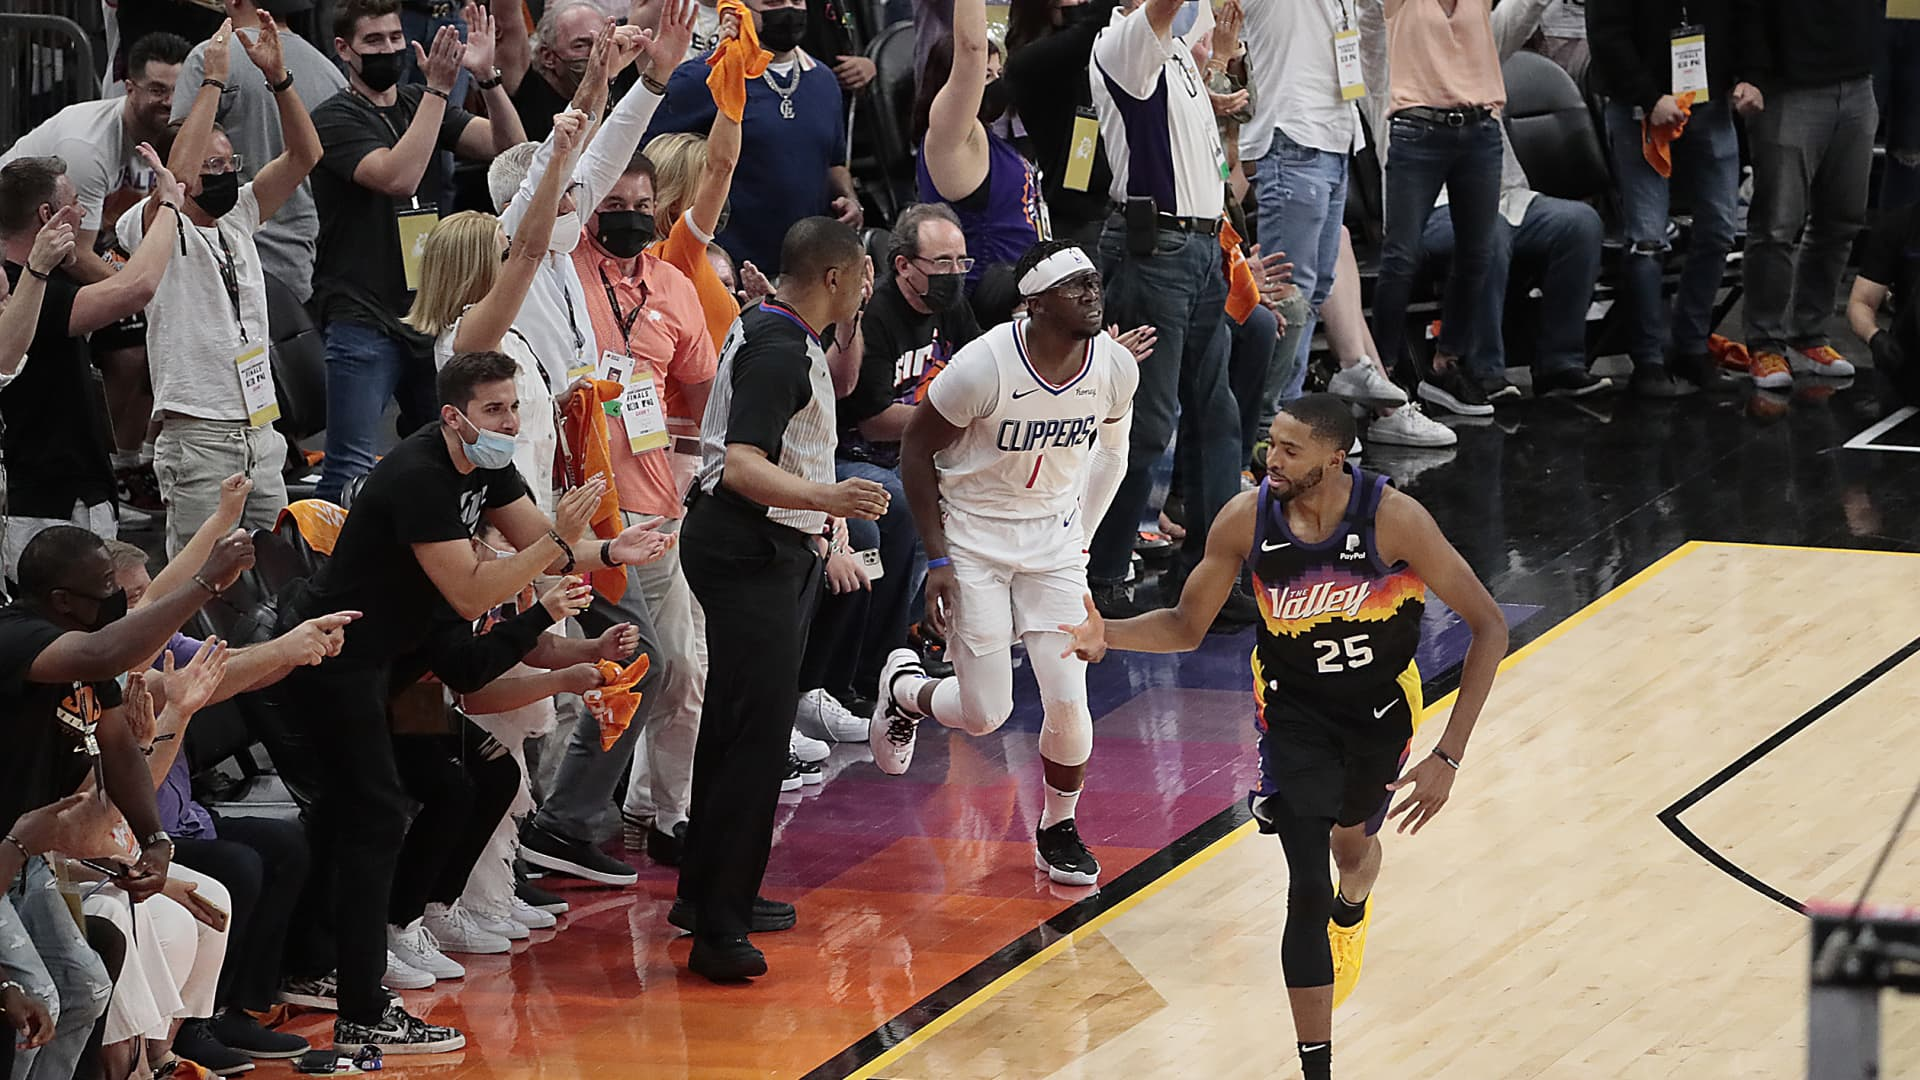 Fans erupt after Phoenix Suns forward Mikal Bridges (25) hit a three-pointer over LA Clippers guard Reggie Jackson (1) late in Game one of the NBA Western Conference Finals at Phoenix Suns Arena.